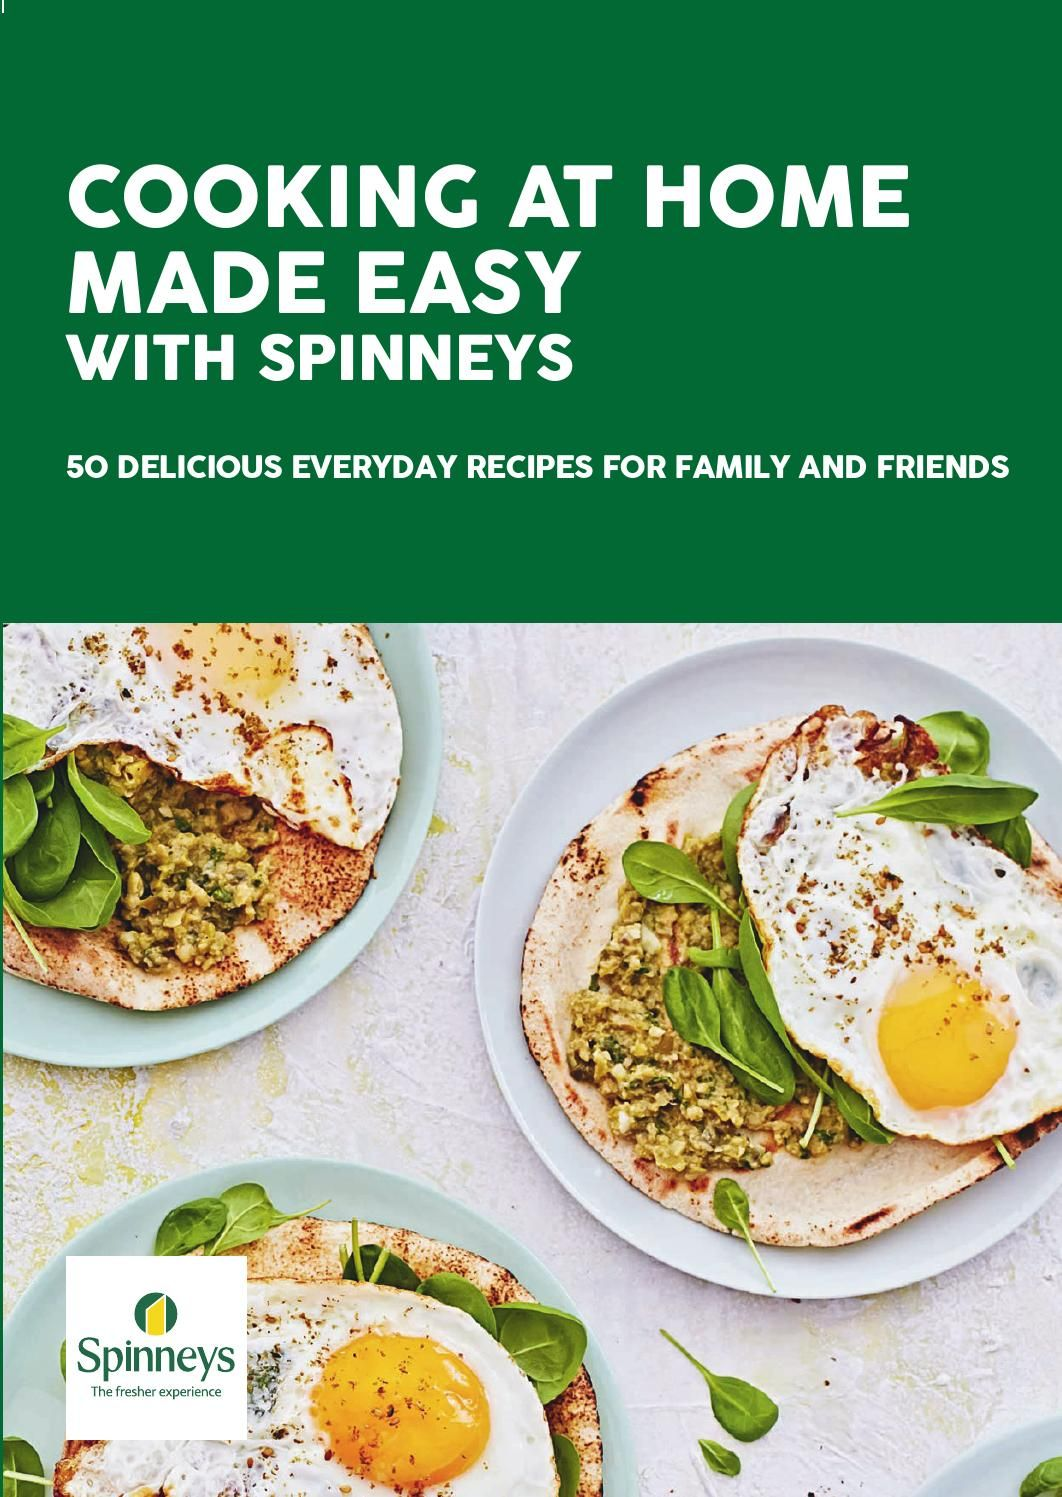 Bbc good food me recipe book spinneys good food middle east bbc good food me recipe book spinneys forumfinder Images